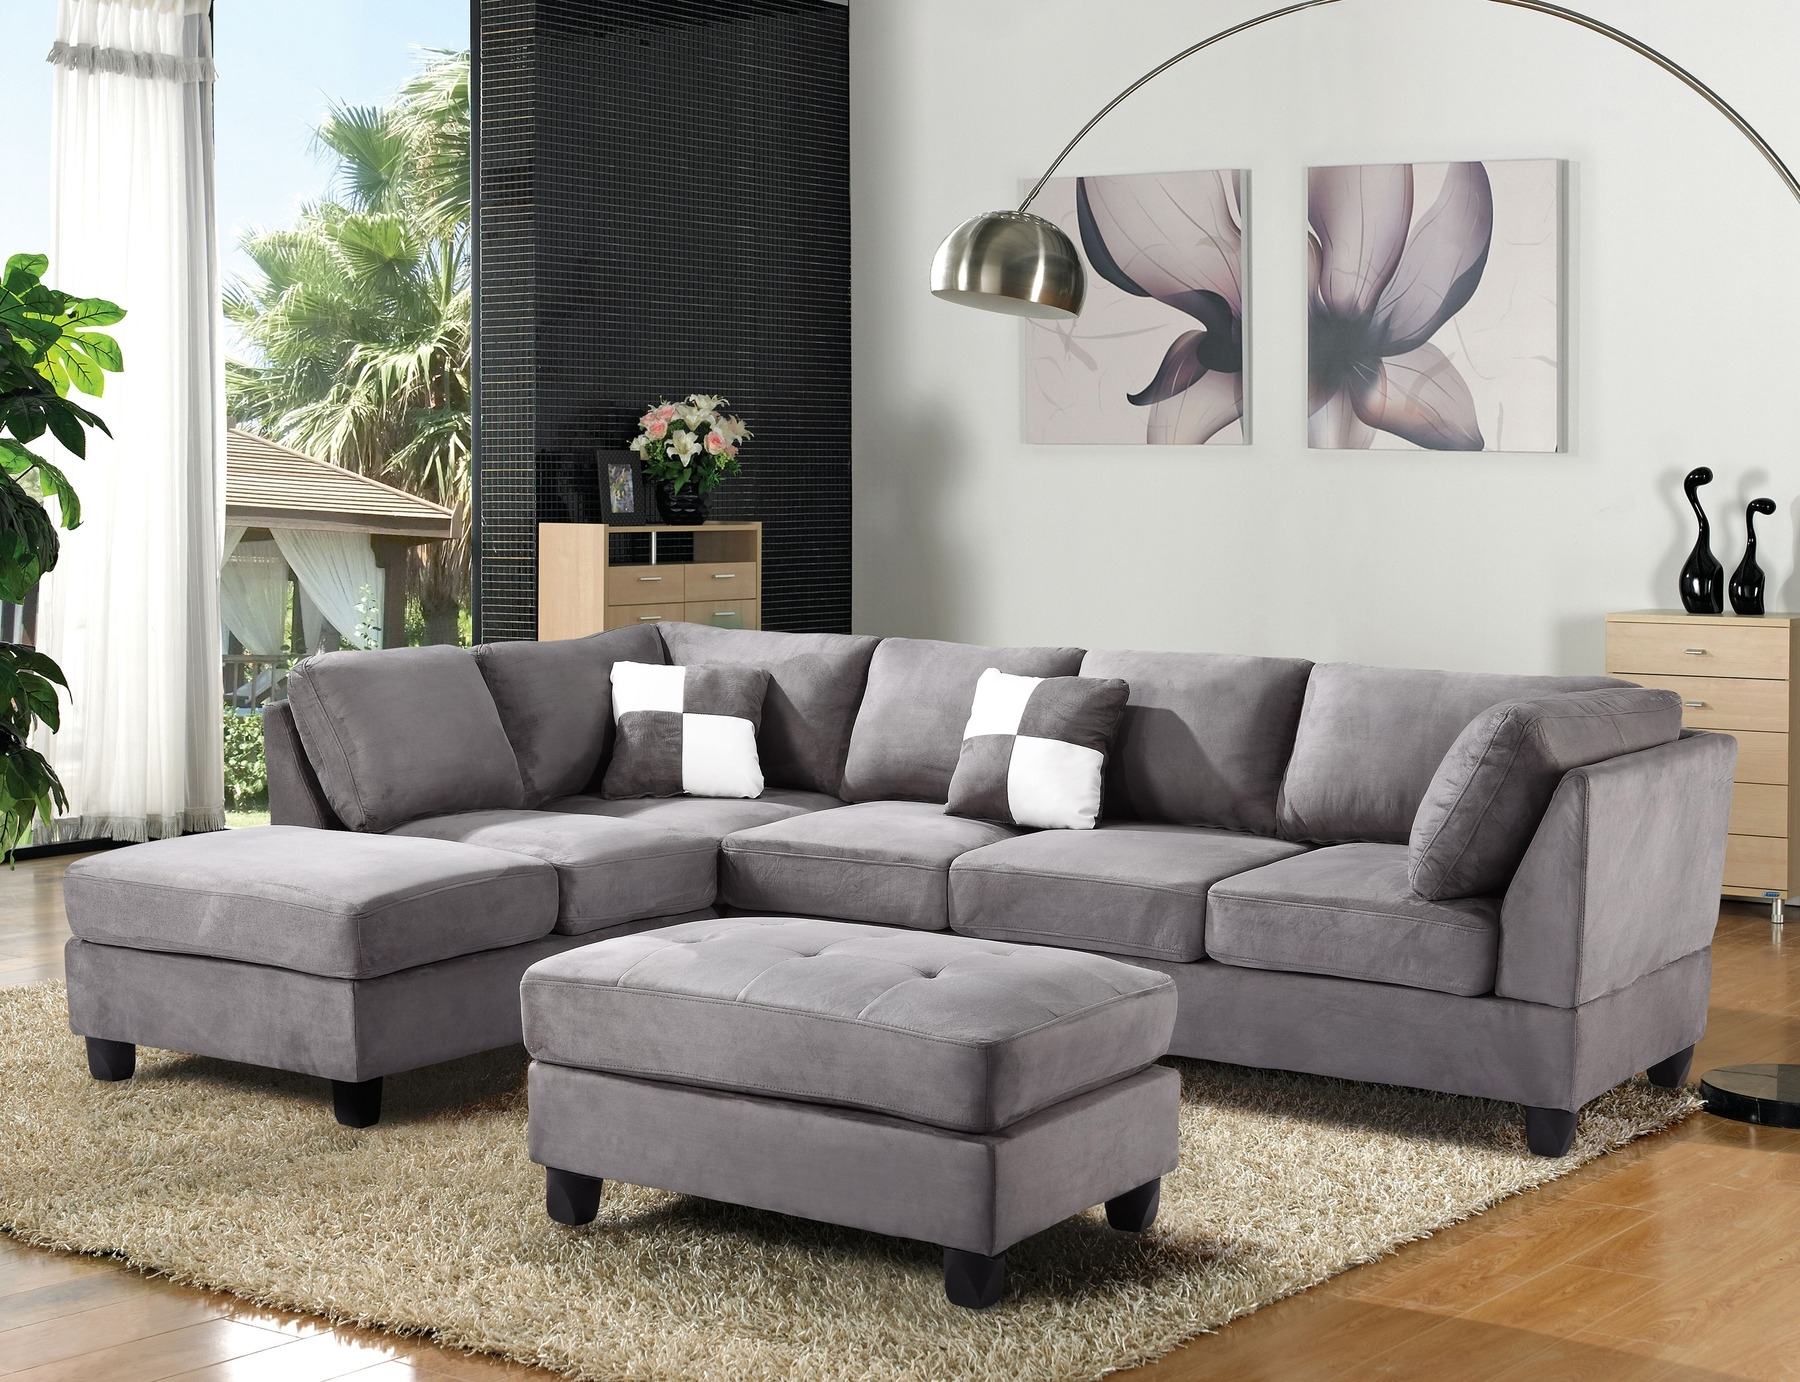 Sectional Sofas At Ashley Furniture With Regard To Current Sofa : Signature Designashley Toletta Chocolate Sectional Sofa (View 17 of 20)